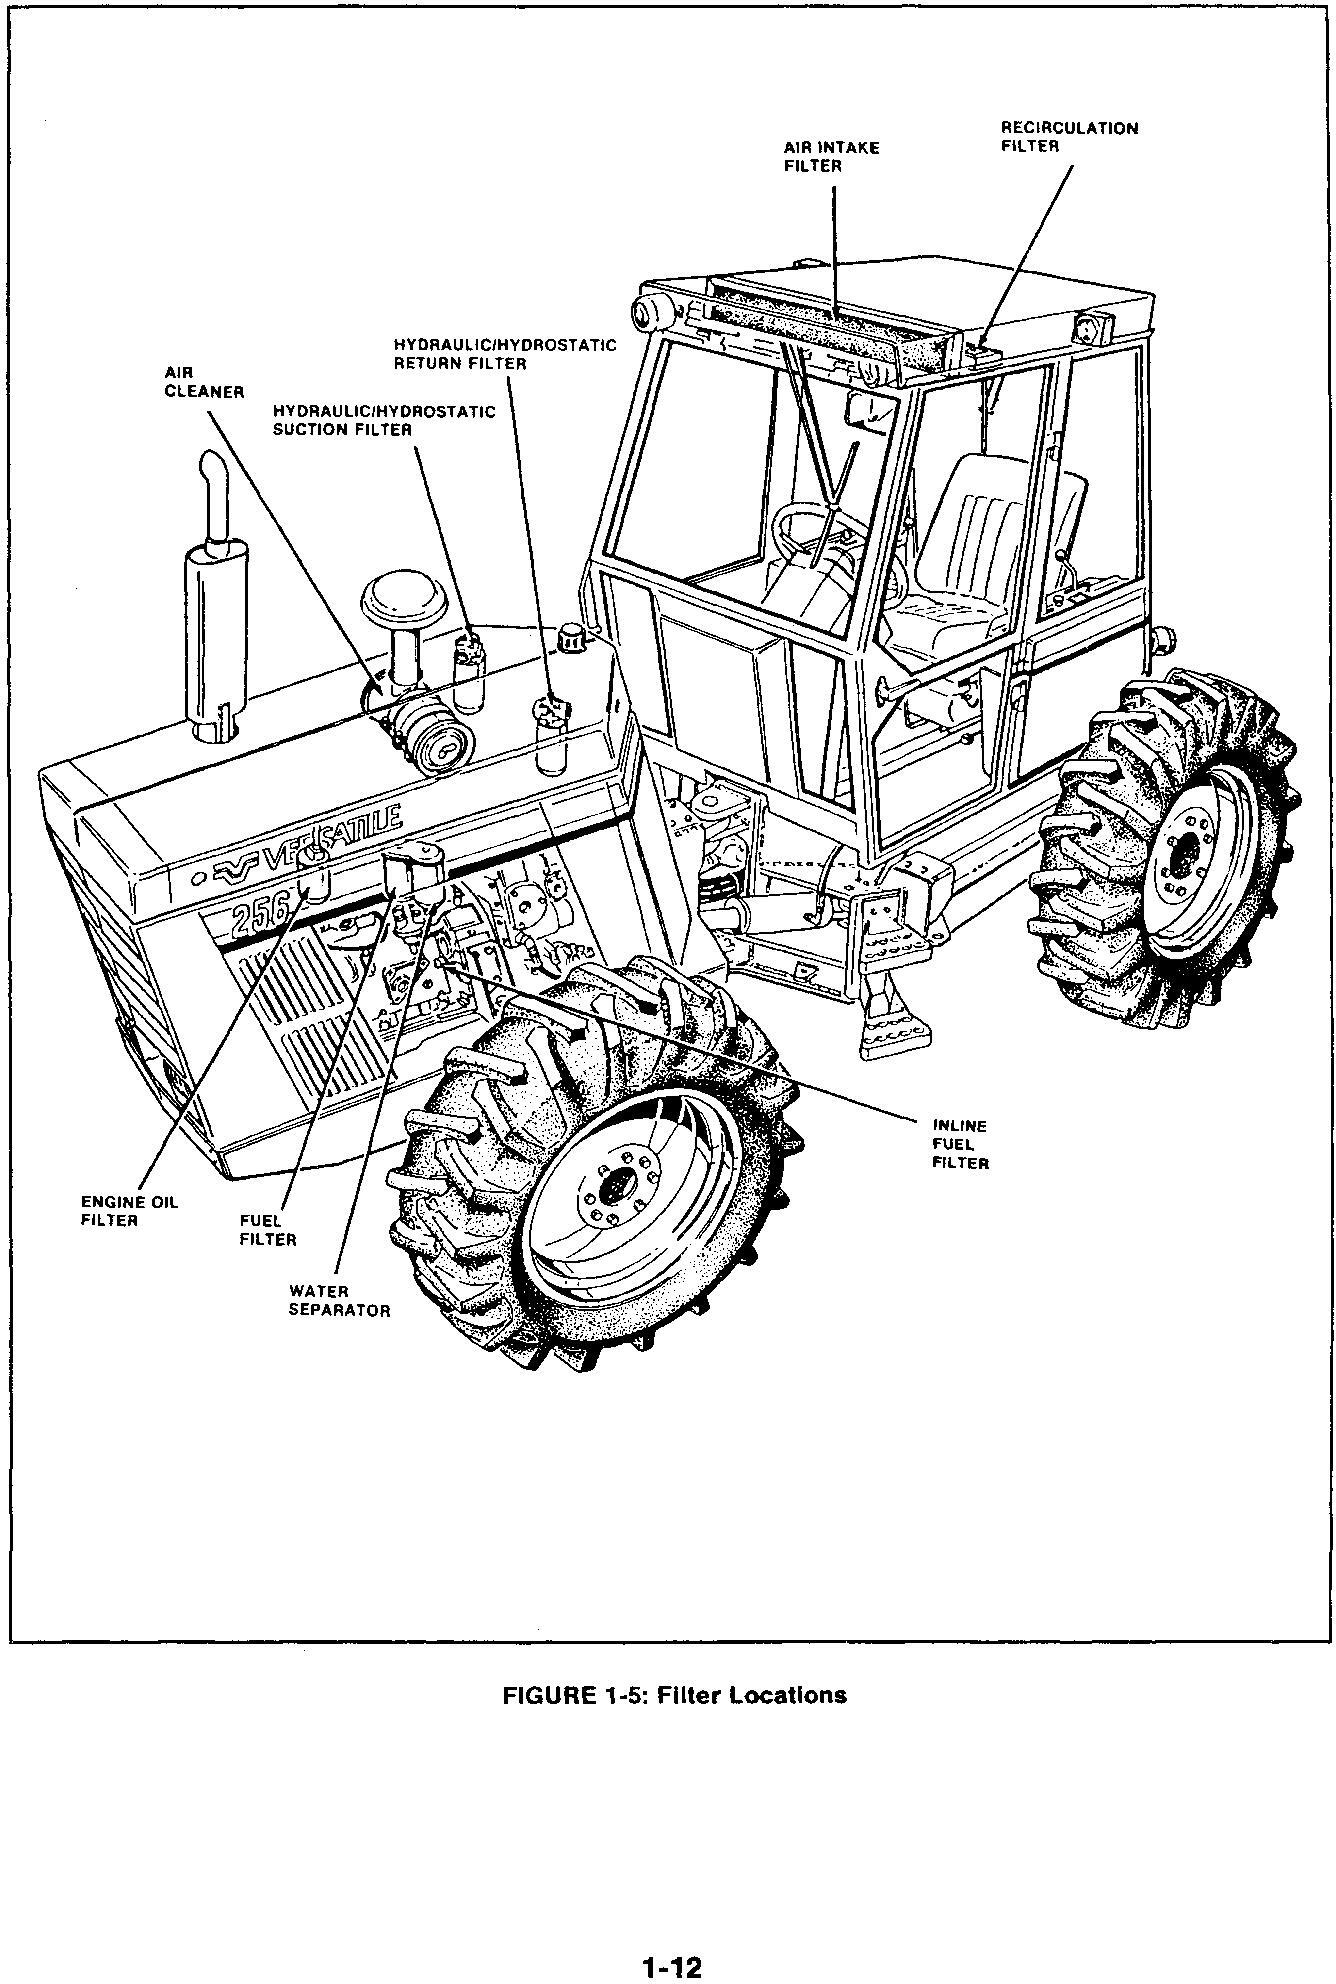 Ford 256, 276, 276 II Bi-directional Versatile Tractor Service Manual - 1